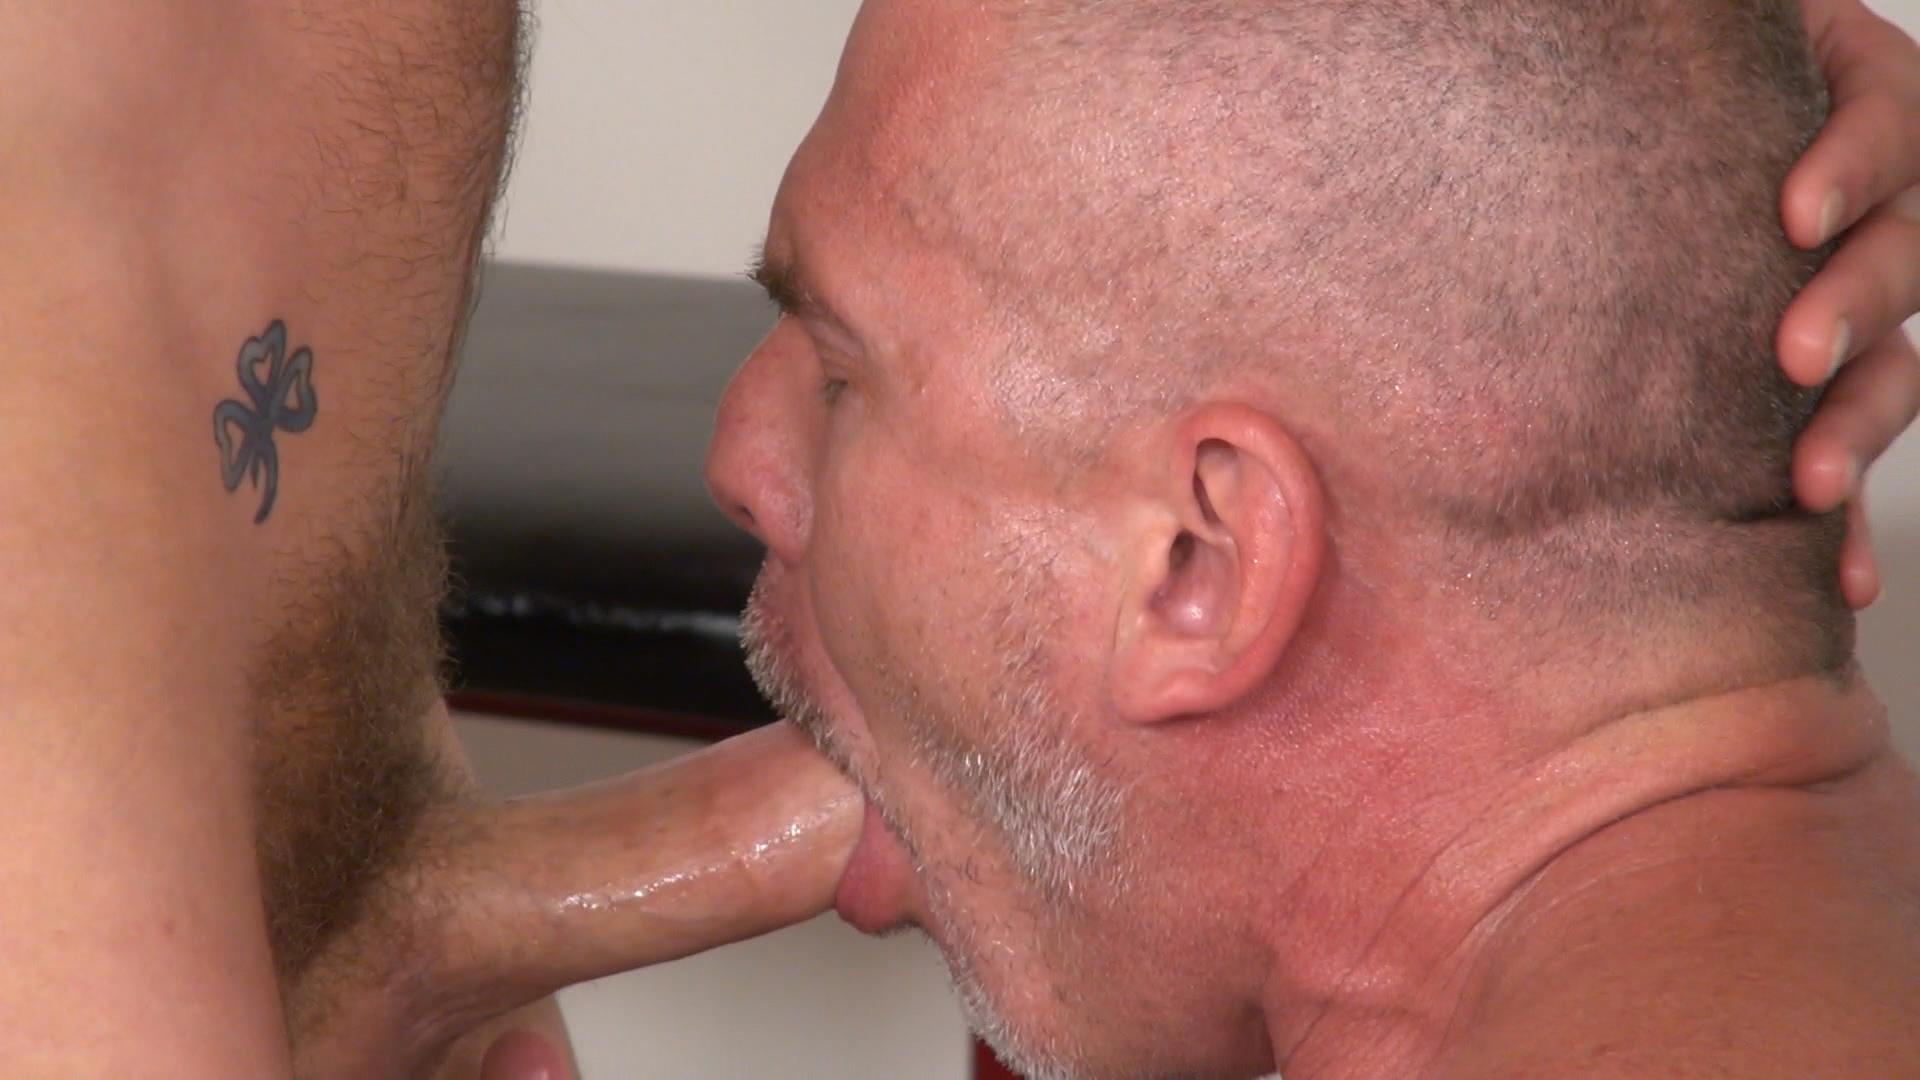 Raw and Rough Sam Dixon and Blue Bailey Daddy And Boy Flip Flip Bareback Fucking Amateur Gay Porn 01 Blue Bailey Flip Flop Barebacking With A Hung Daddy